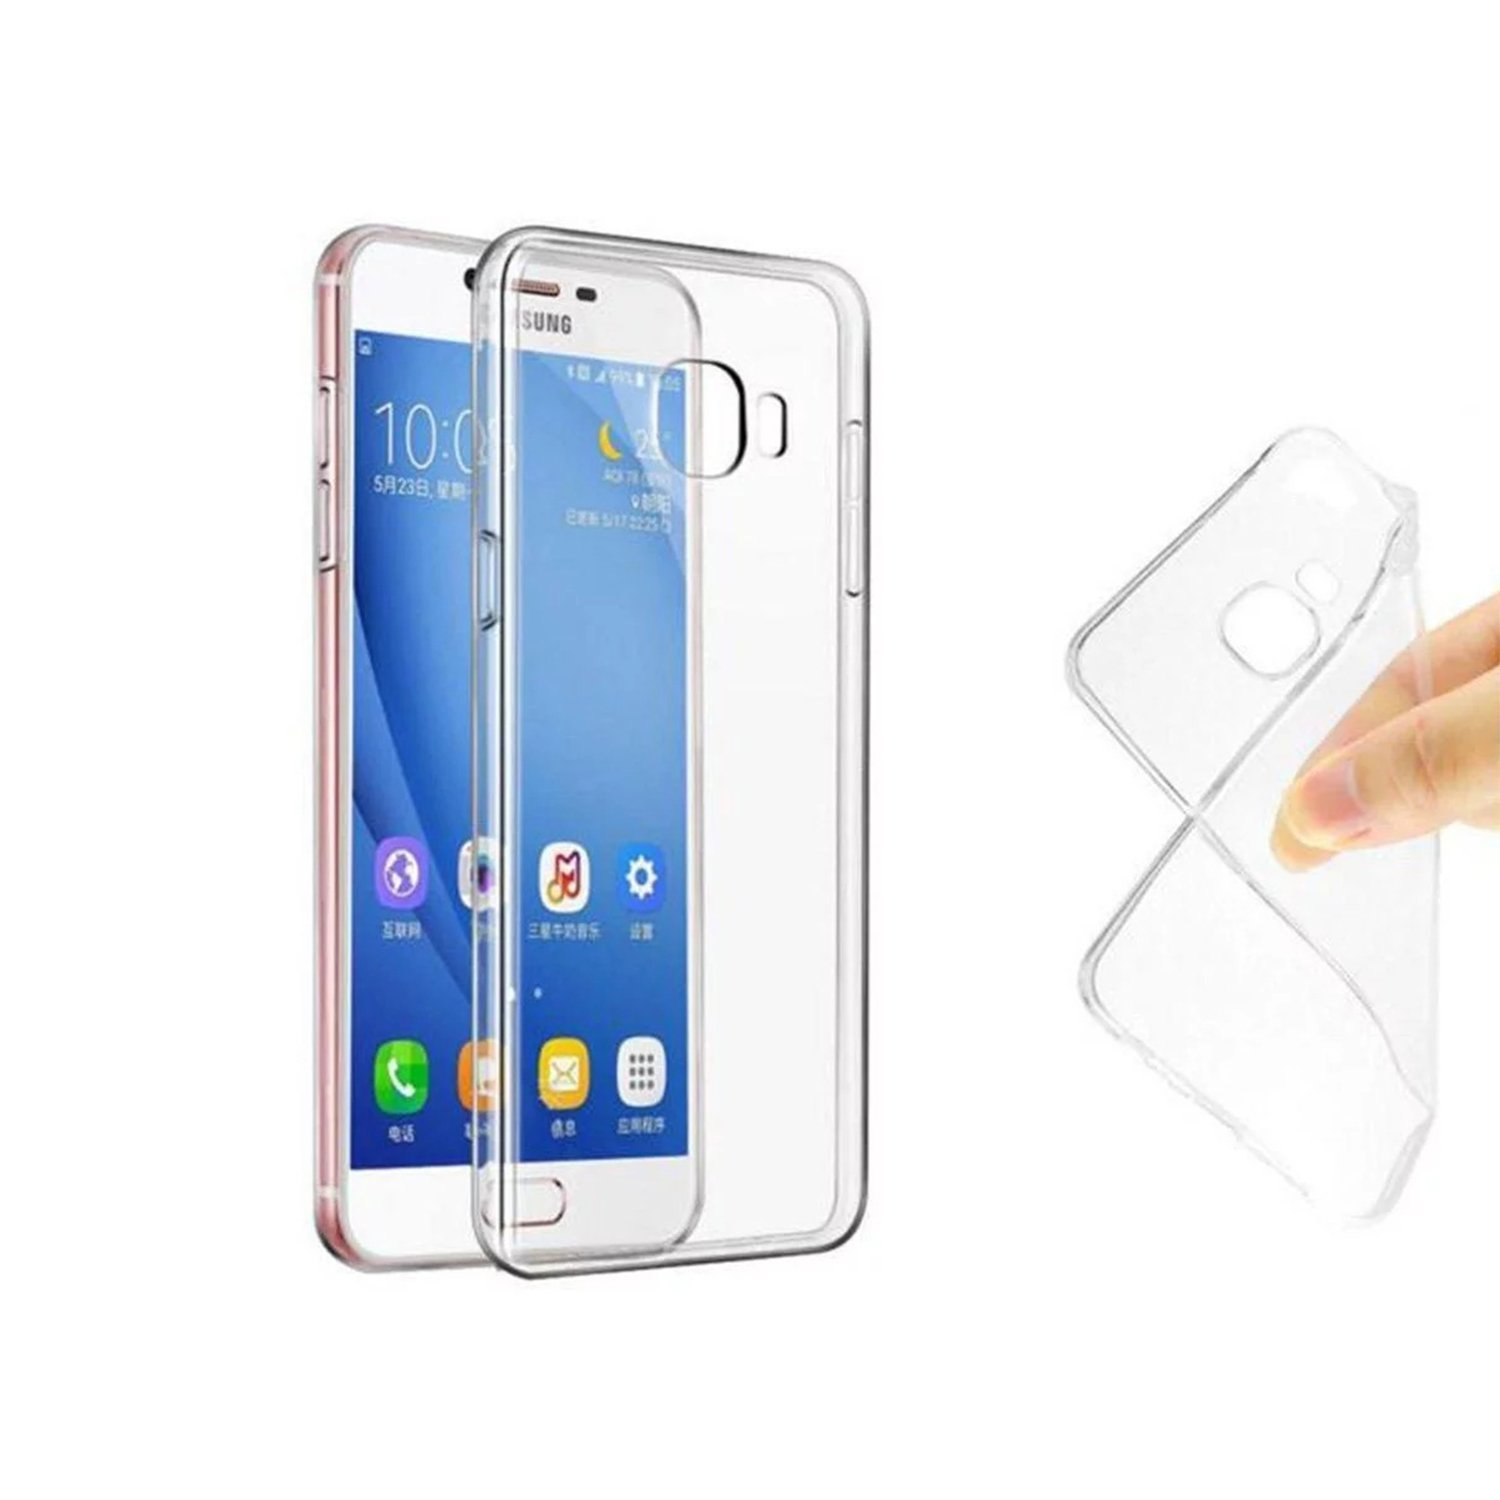 online store 18a8c 64c48 Lofad Case Samsung Galaxy On Nxt/J7 Prime/On7 Prime Case Ultra Thin  Transparent Soft Gel TPU Silicone Case Cover for Samsung Galaxy On Nxt/J7  Prime/On ...